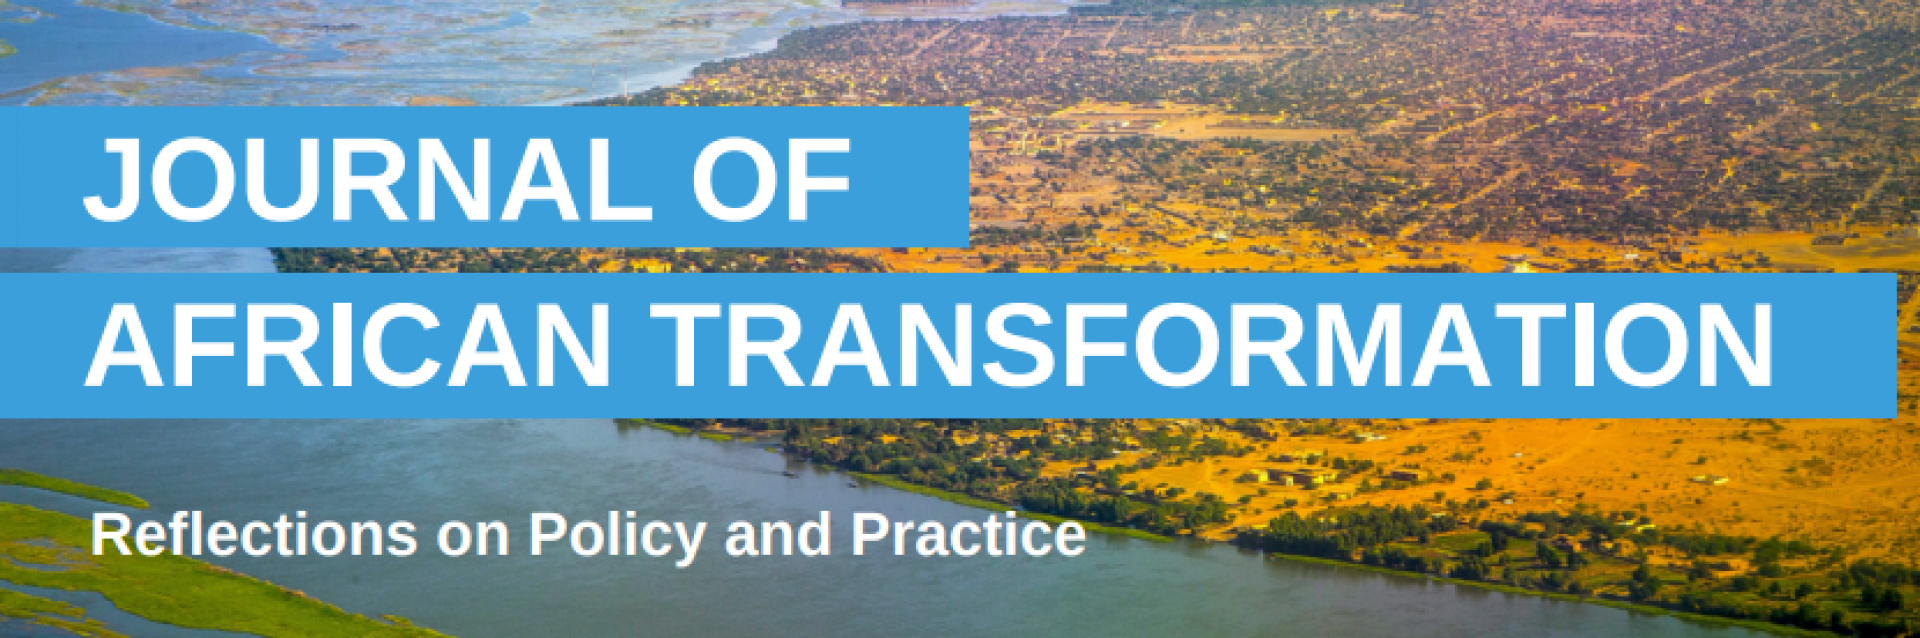 Journal of African Transformation - Special 2022 Edition